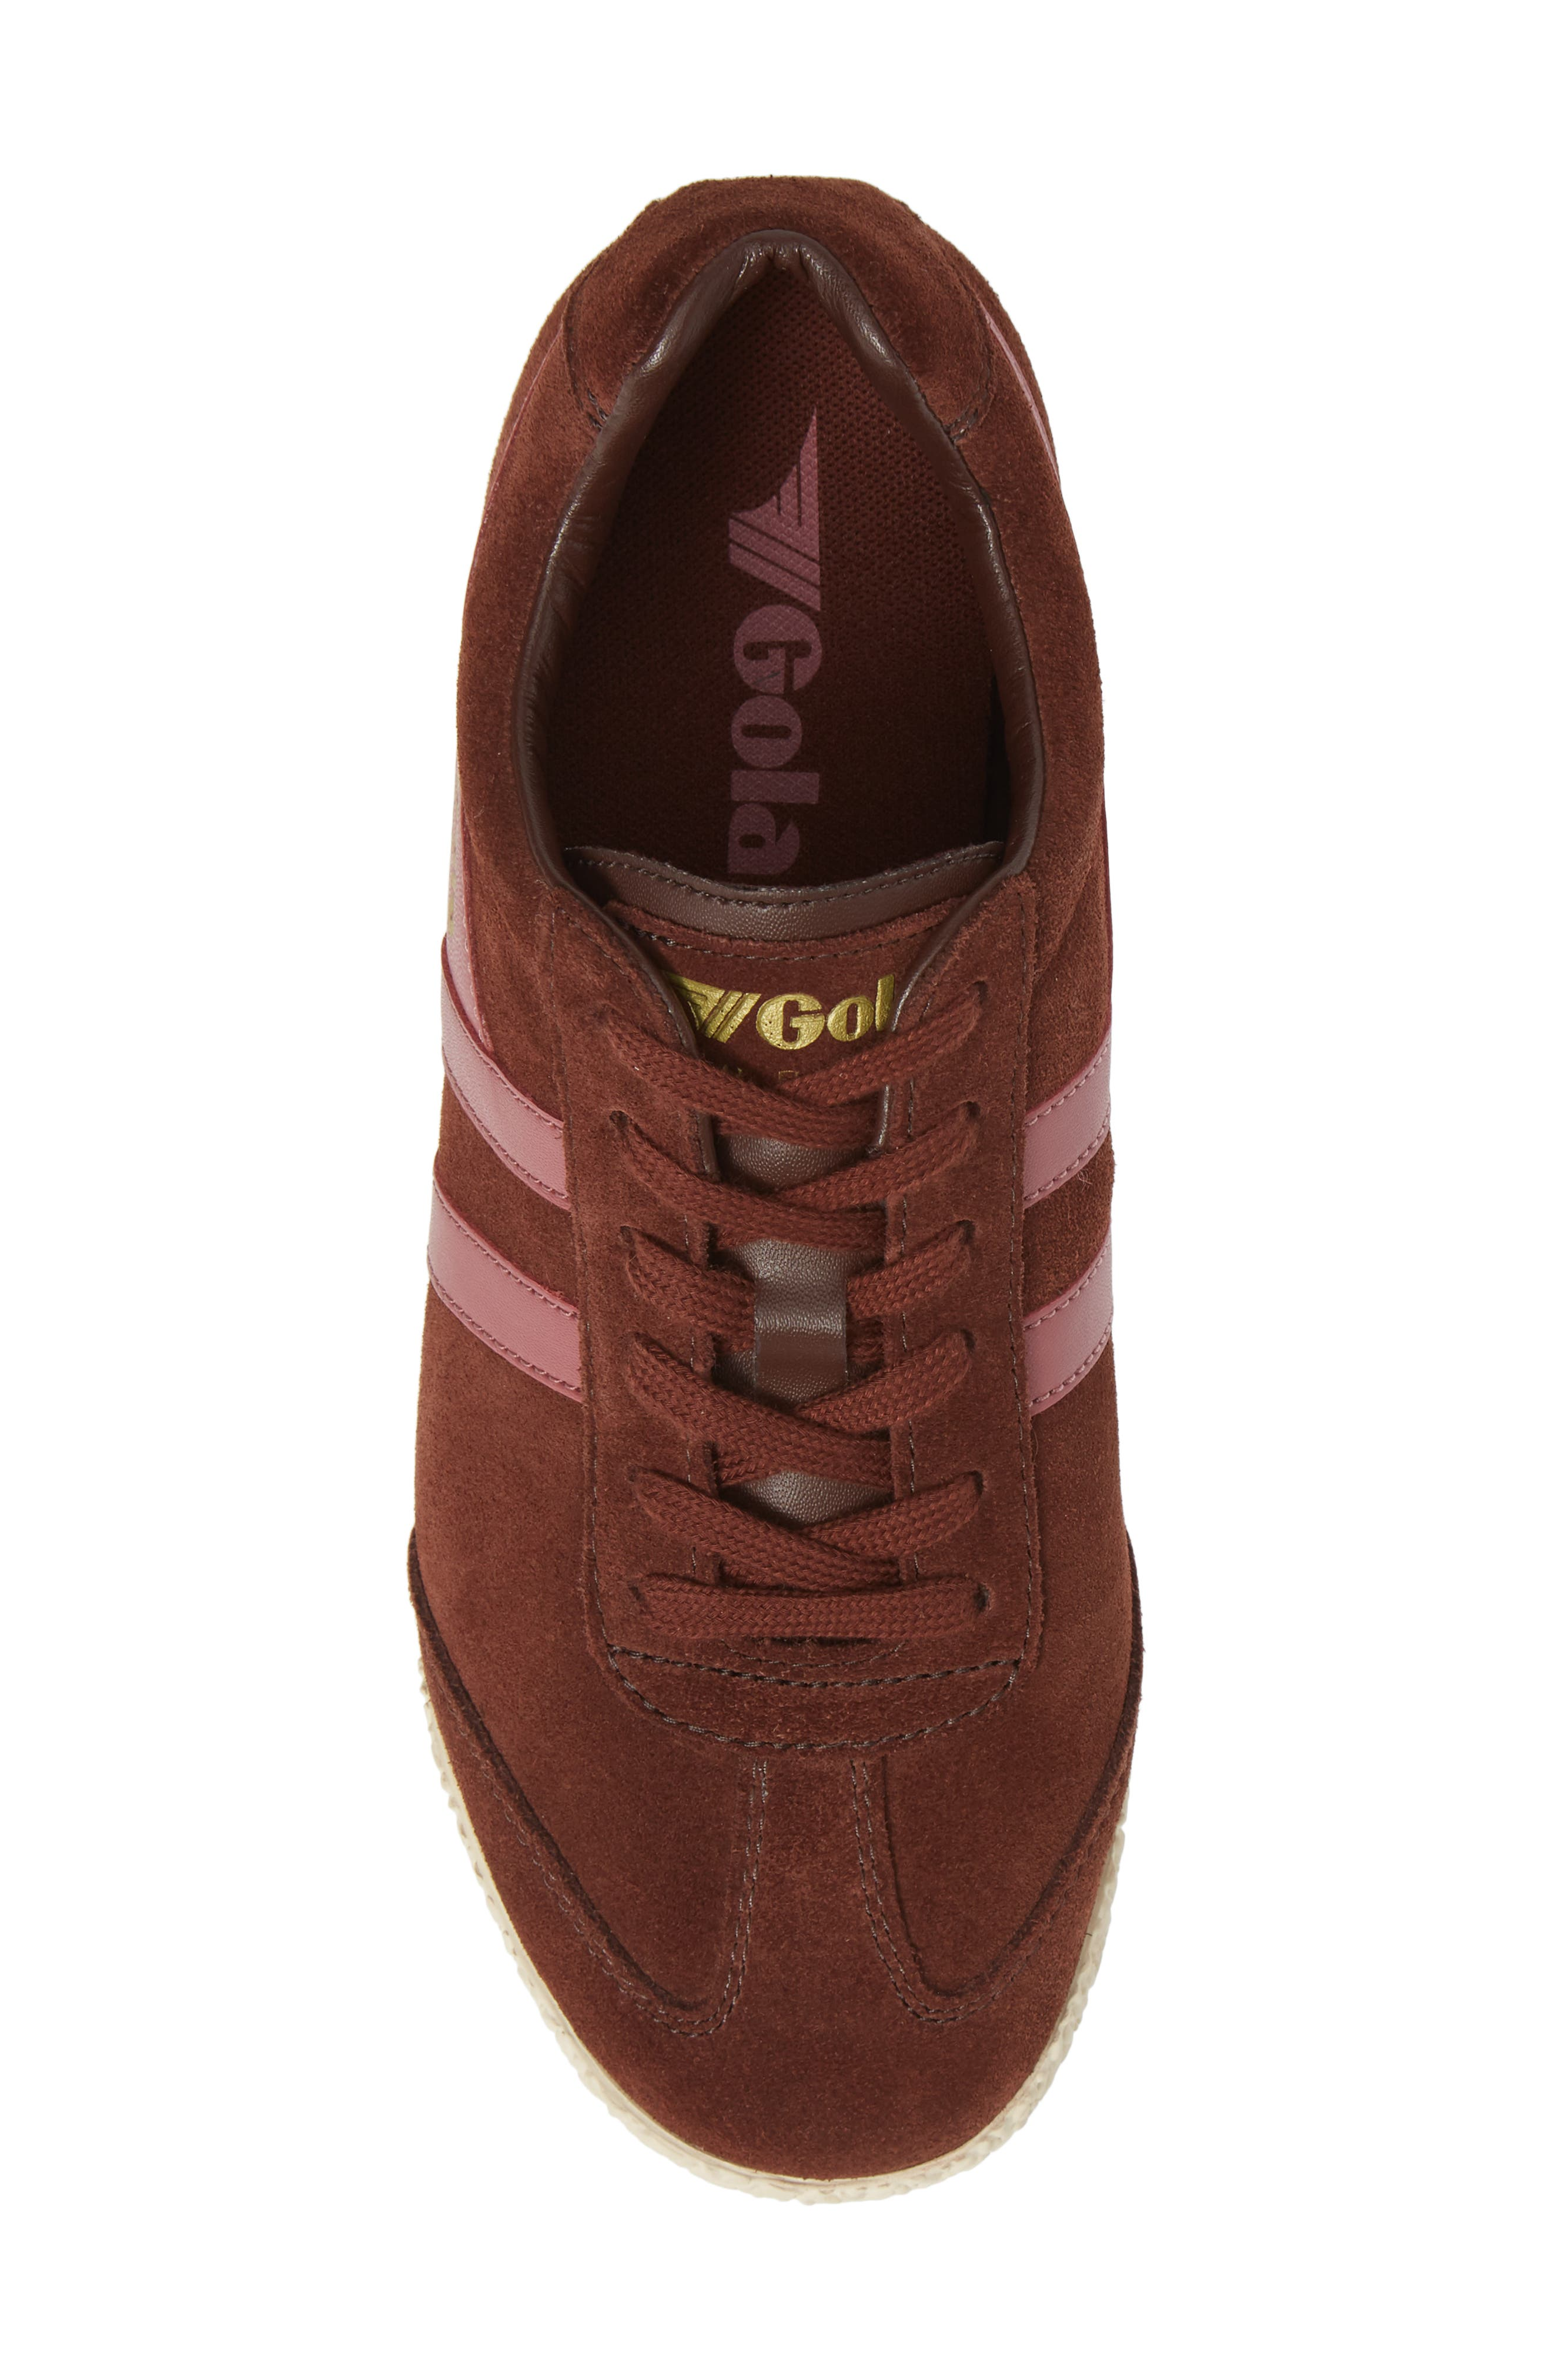 Harrier Suede Low Top Sneaker,                             Alternate thumbnail 5, color,                             COGNAC/ DUSTY ROSE